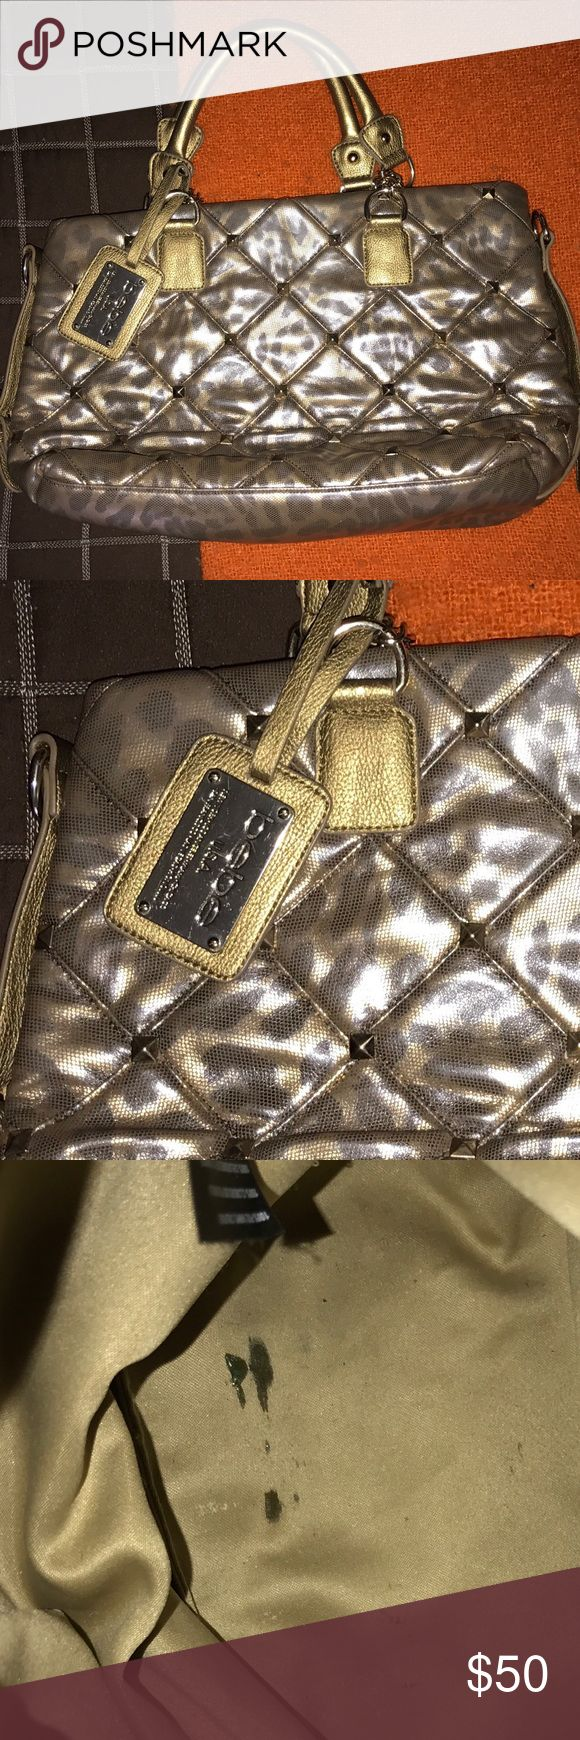 Bebe Purse Beautiful Bebe purse. The rustic gold and silver colors makes it stunning and perfect for any outfit. Purse is in awesome excellent worn condition. The only sign of wear is on the inside (pen mark in the last pic). Offers welcomed😉 bebe Bags Totes